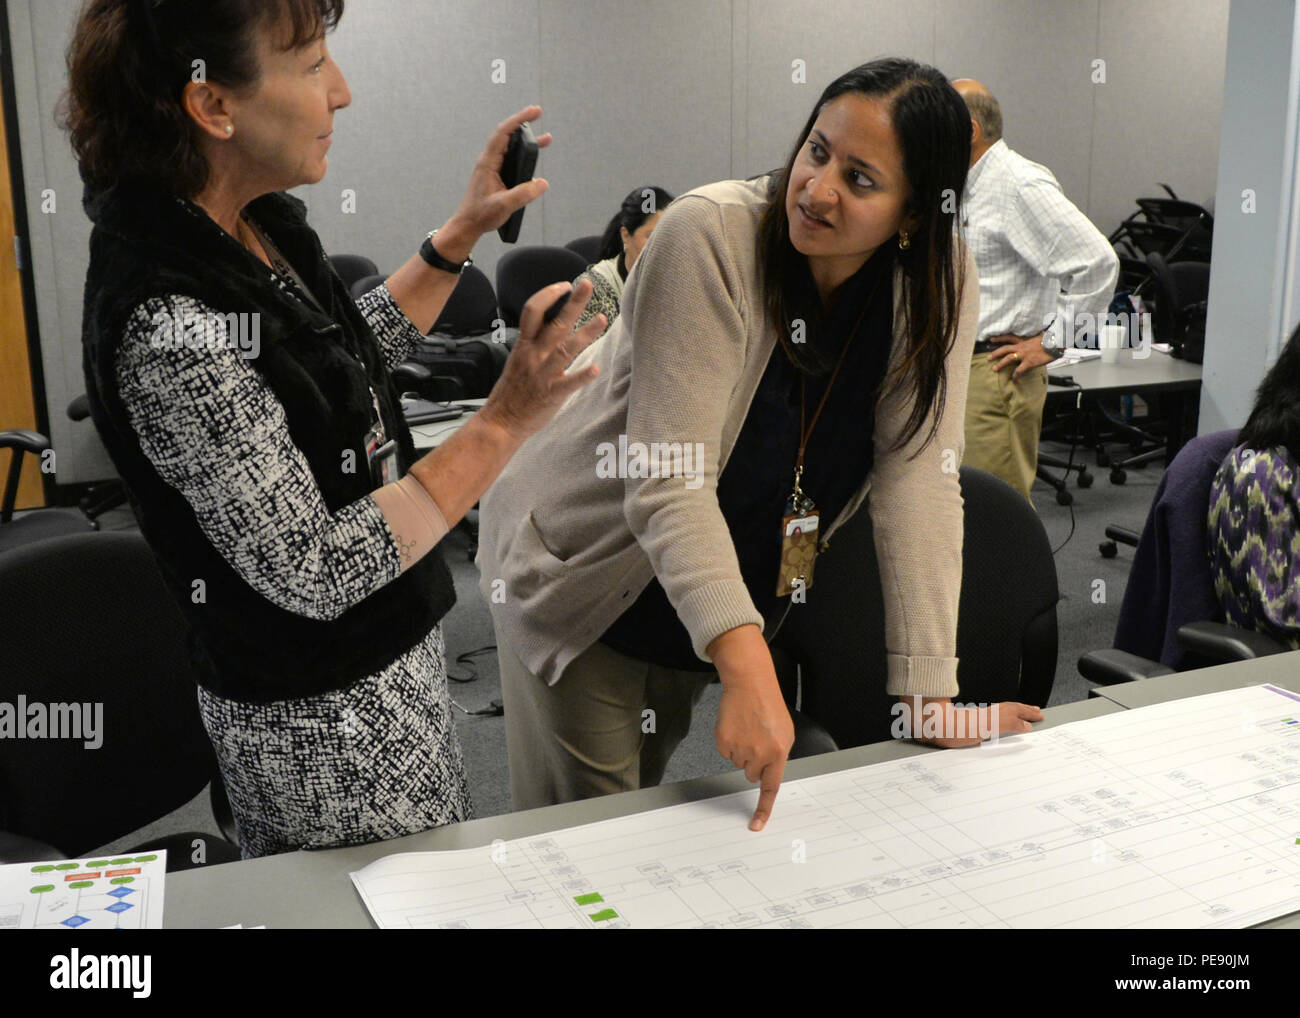 151104 N Un340 015 San Diego Nov 4 2015 Space And Naval Warfare Systems Command Spawar Resource Manager Gretchen Kozub Left And Spawar Cybersafe Program Director Sudha Vyas Review Steps In The Cybersafe Program During